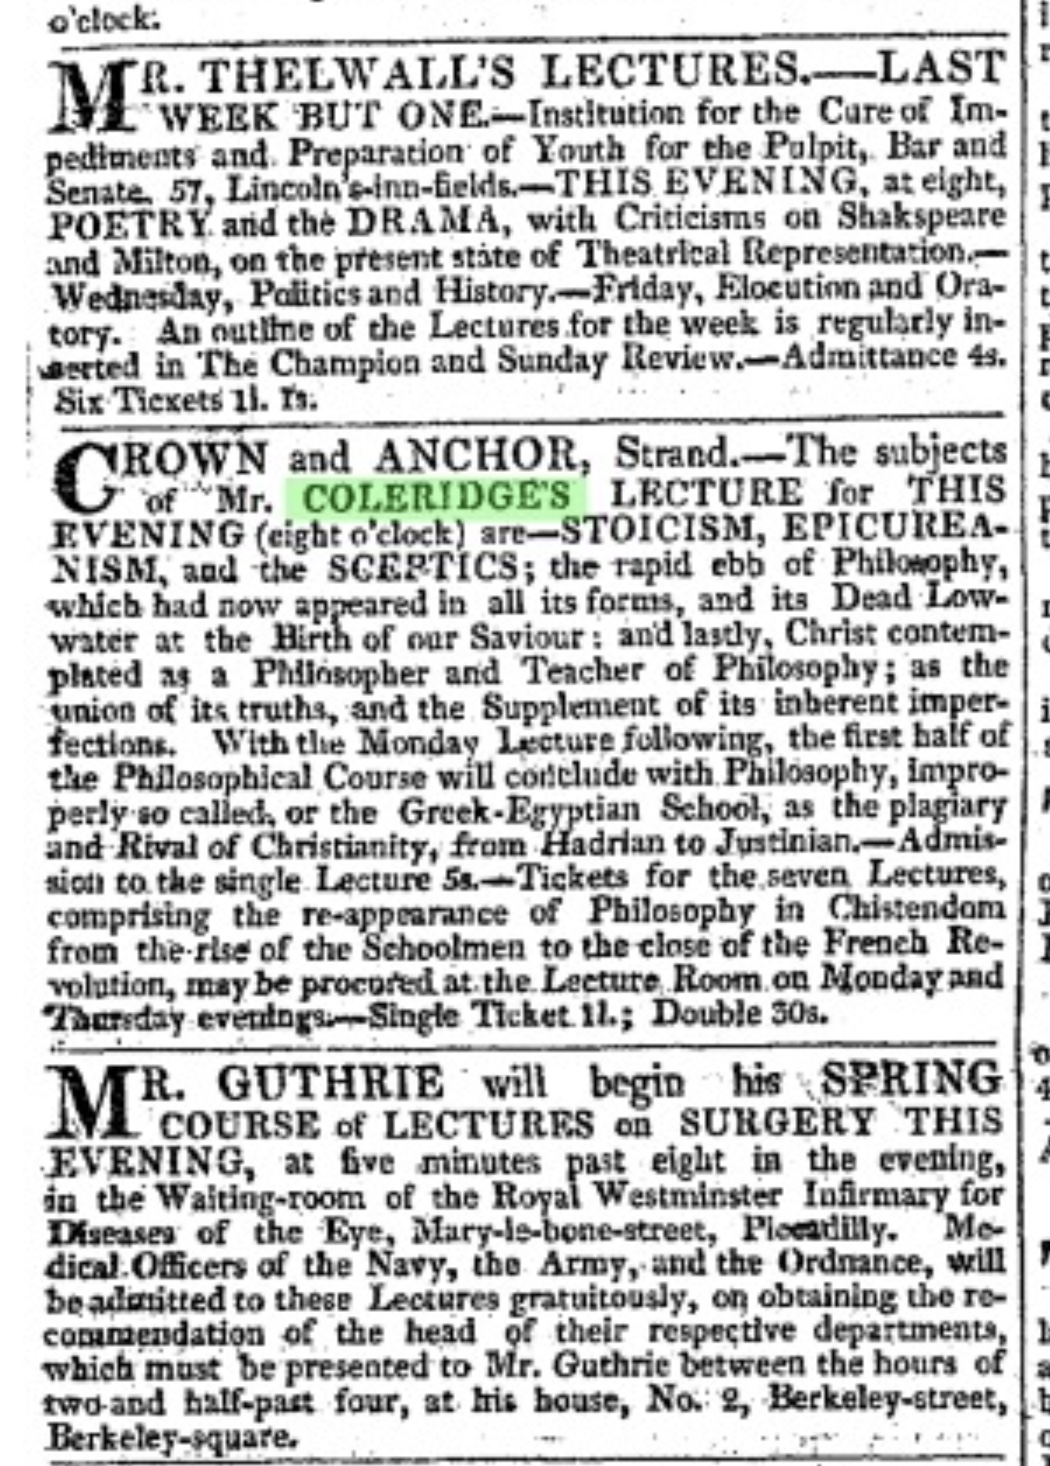 *Coleridge's lecture (on just about everything) advertised in The Morning Chronicle, 25 January 1821. Keats might have got         some of this on his walk with Coleridge. (Click image to enlarge.)